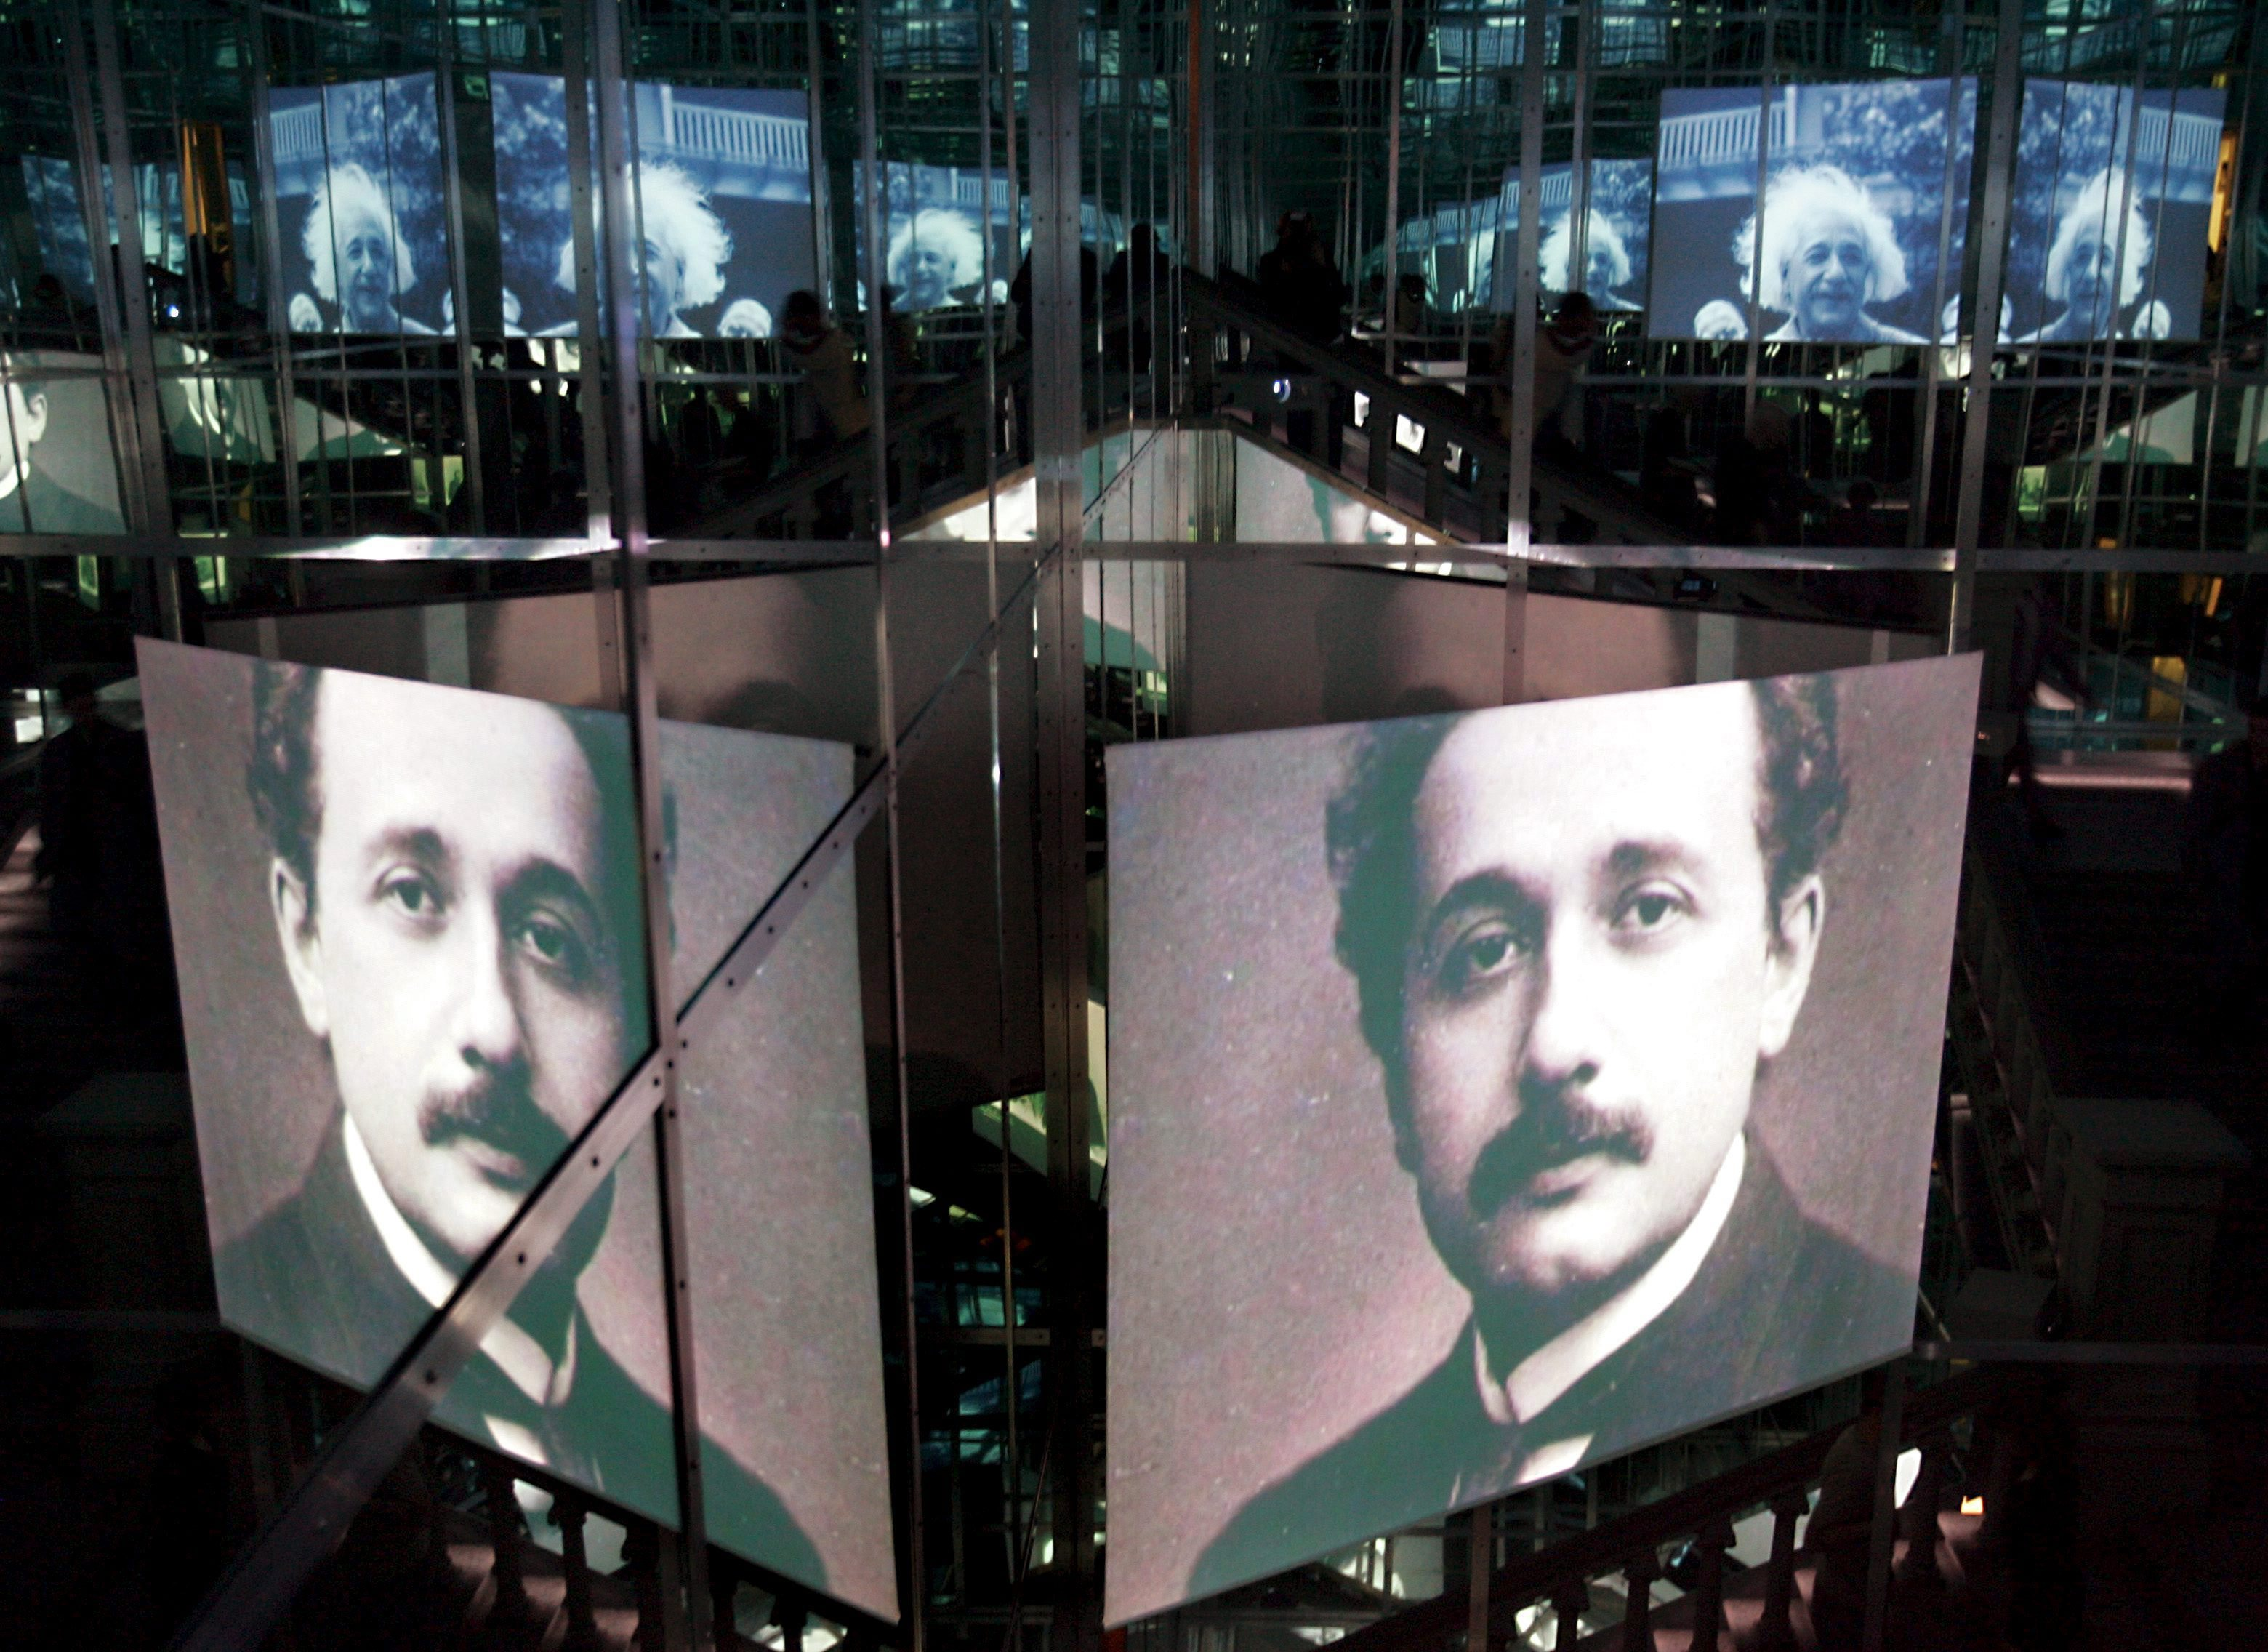 """Changing projections of portraits of physician Albert Einstein are on display in the staircase of the Historical Museum in Bern, Tuesday, June 14, 2005. To mark the centenary of the relativity theory and its discovery in Bern, the Historisches Museum (Historical Museum) in Bern, in cooperation with the Einstein Archive of the Swiss National Library, will present the special exhibition """"Einstein 05"""" on the physican's life and work covering an area of some 2,500 square metres from June 16 to April 17, 2006."""